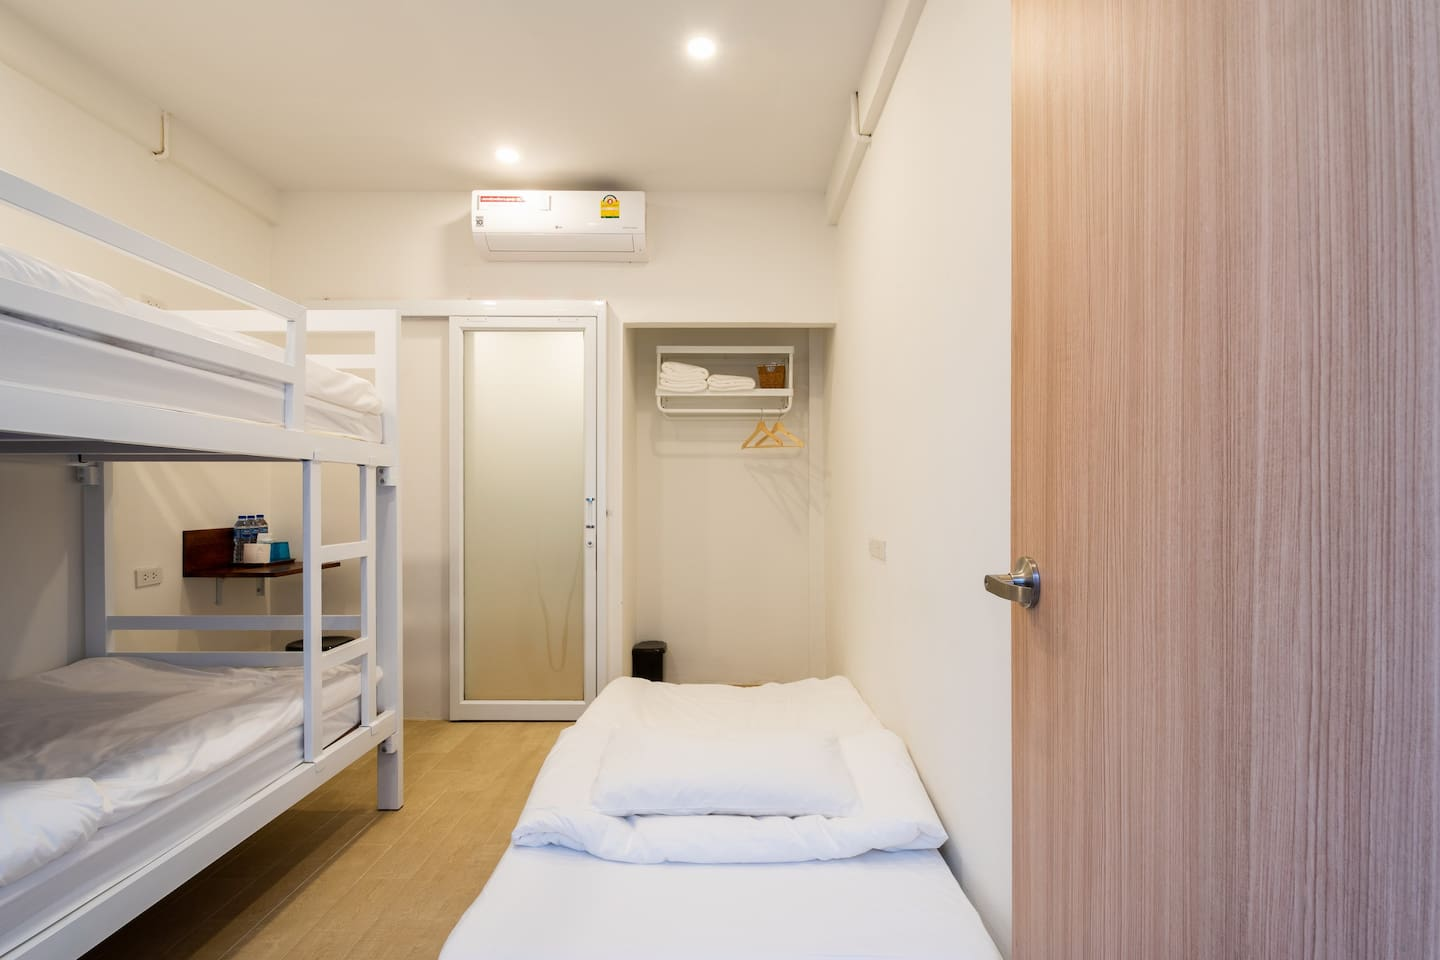 BED ROOM - Bunk bed with single bed - Private bathroom - Desk